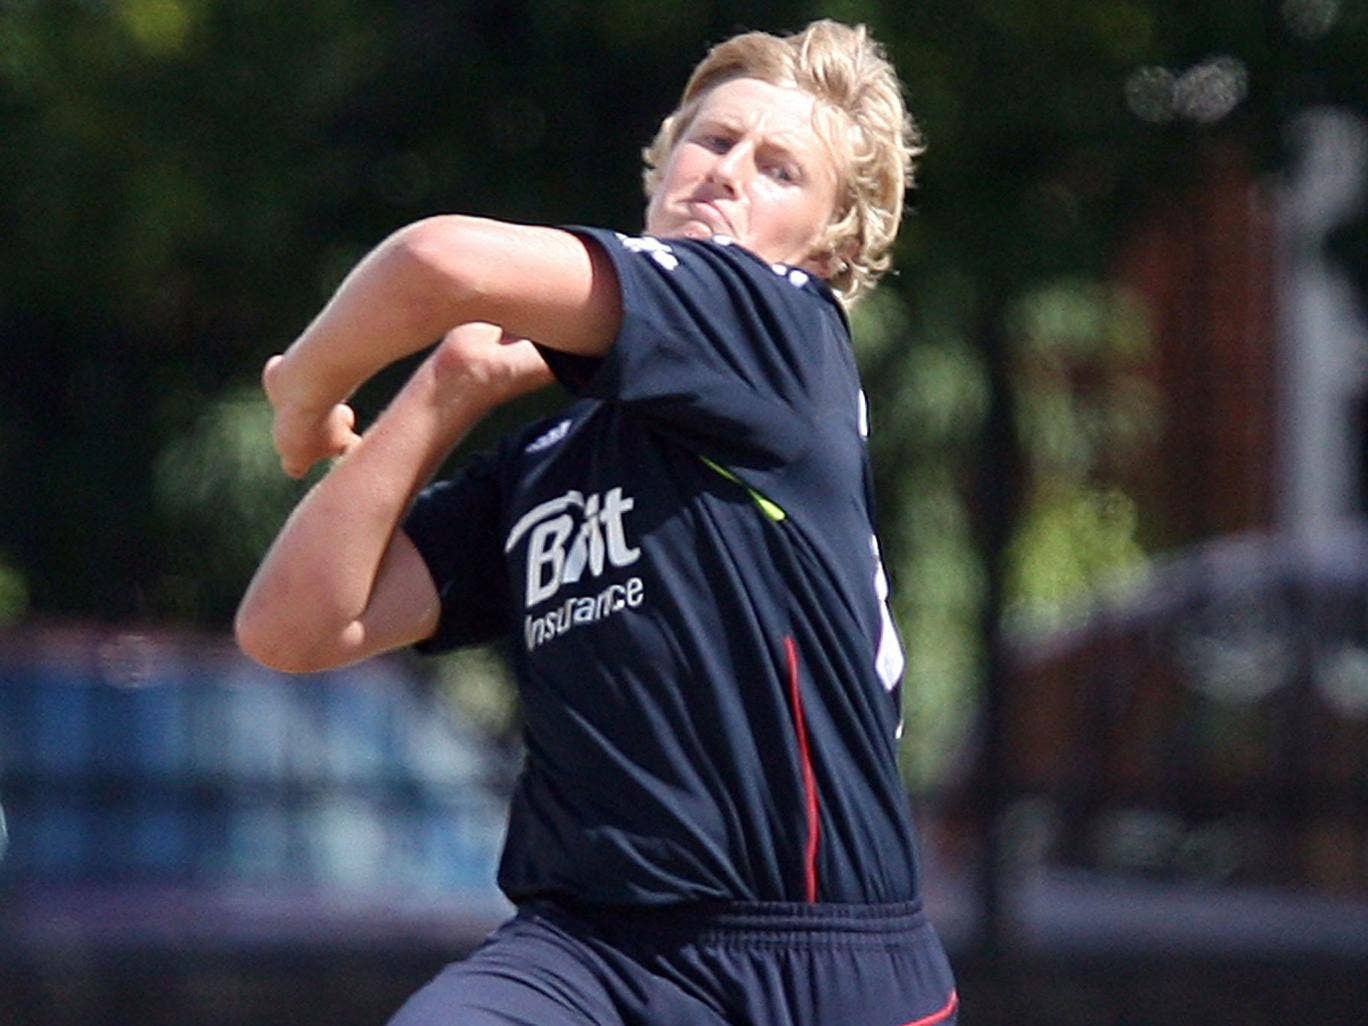 Positive spin: Yorkshire's Joe Root enjoyed his England one-day debut